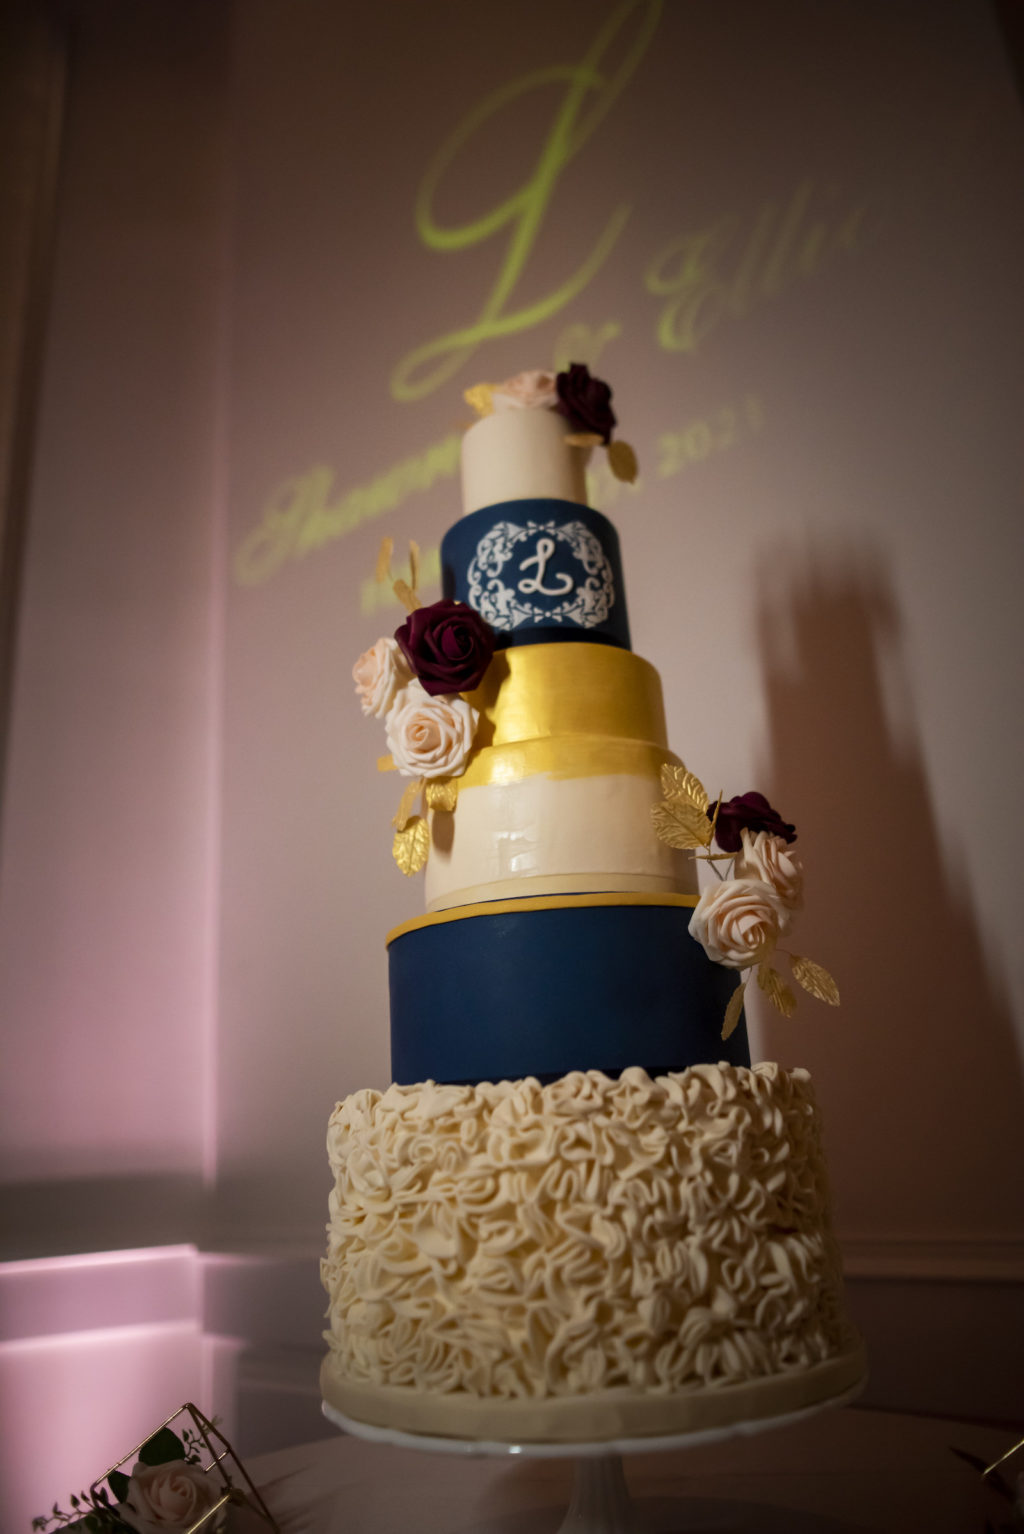 Six Tier Navy Blue, White, and Gold Round Wedding Cake with Monogram and Ruffled Tier   Dessert Inspiration